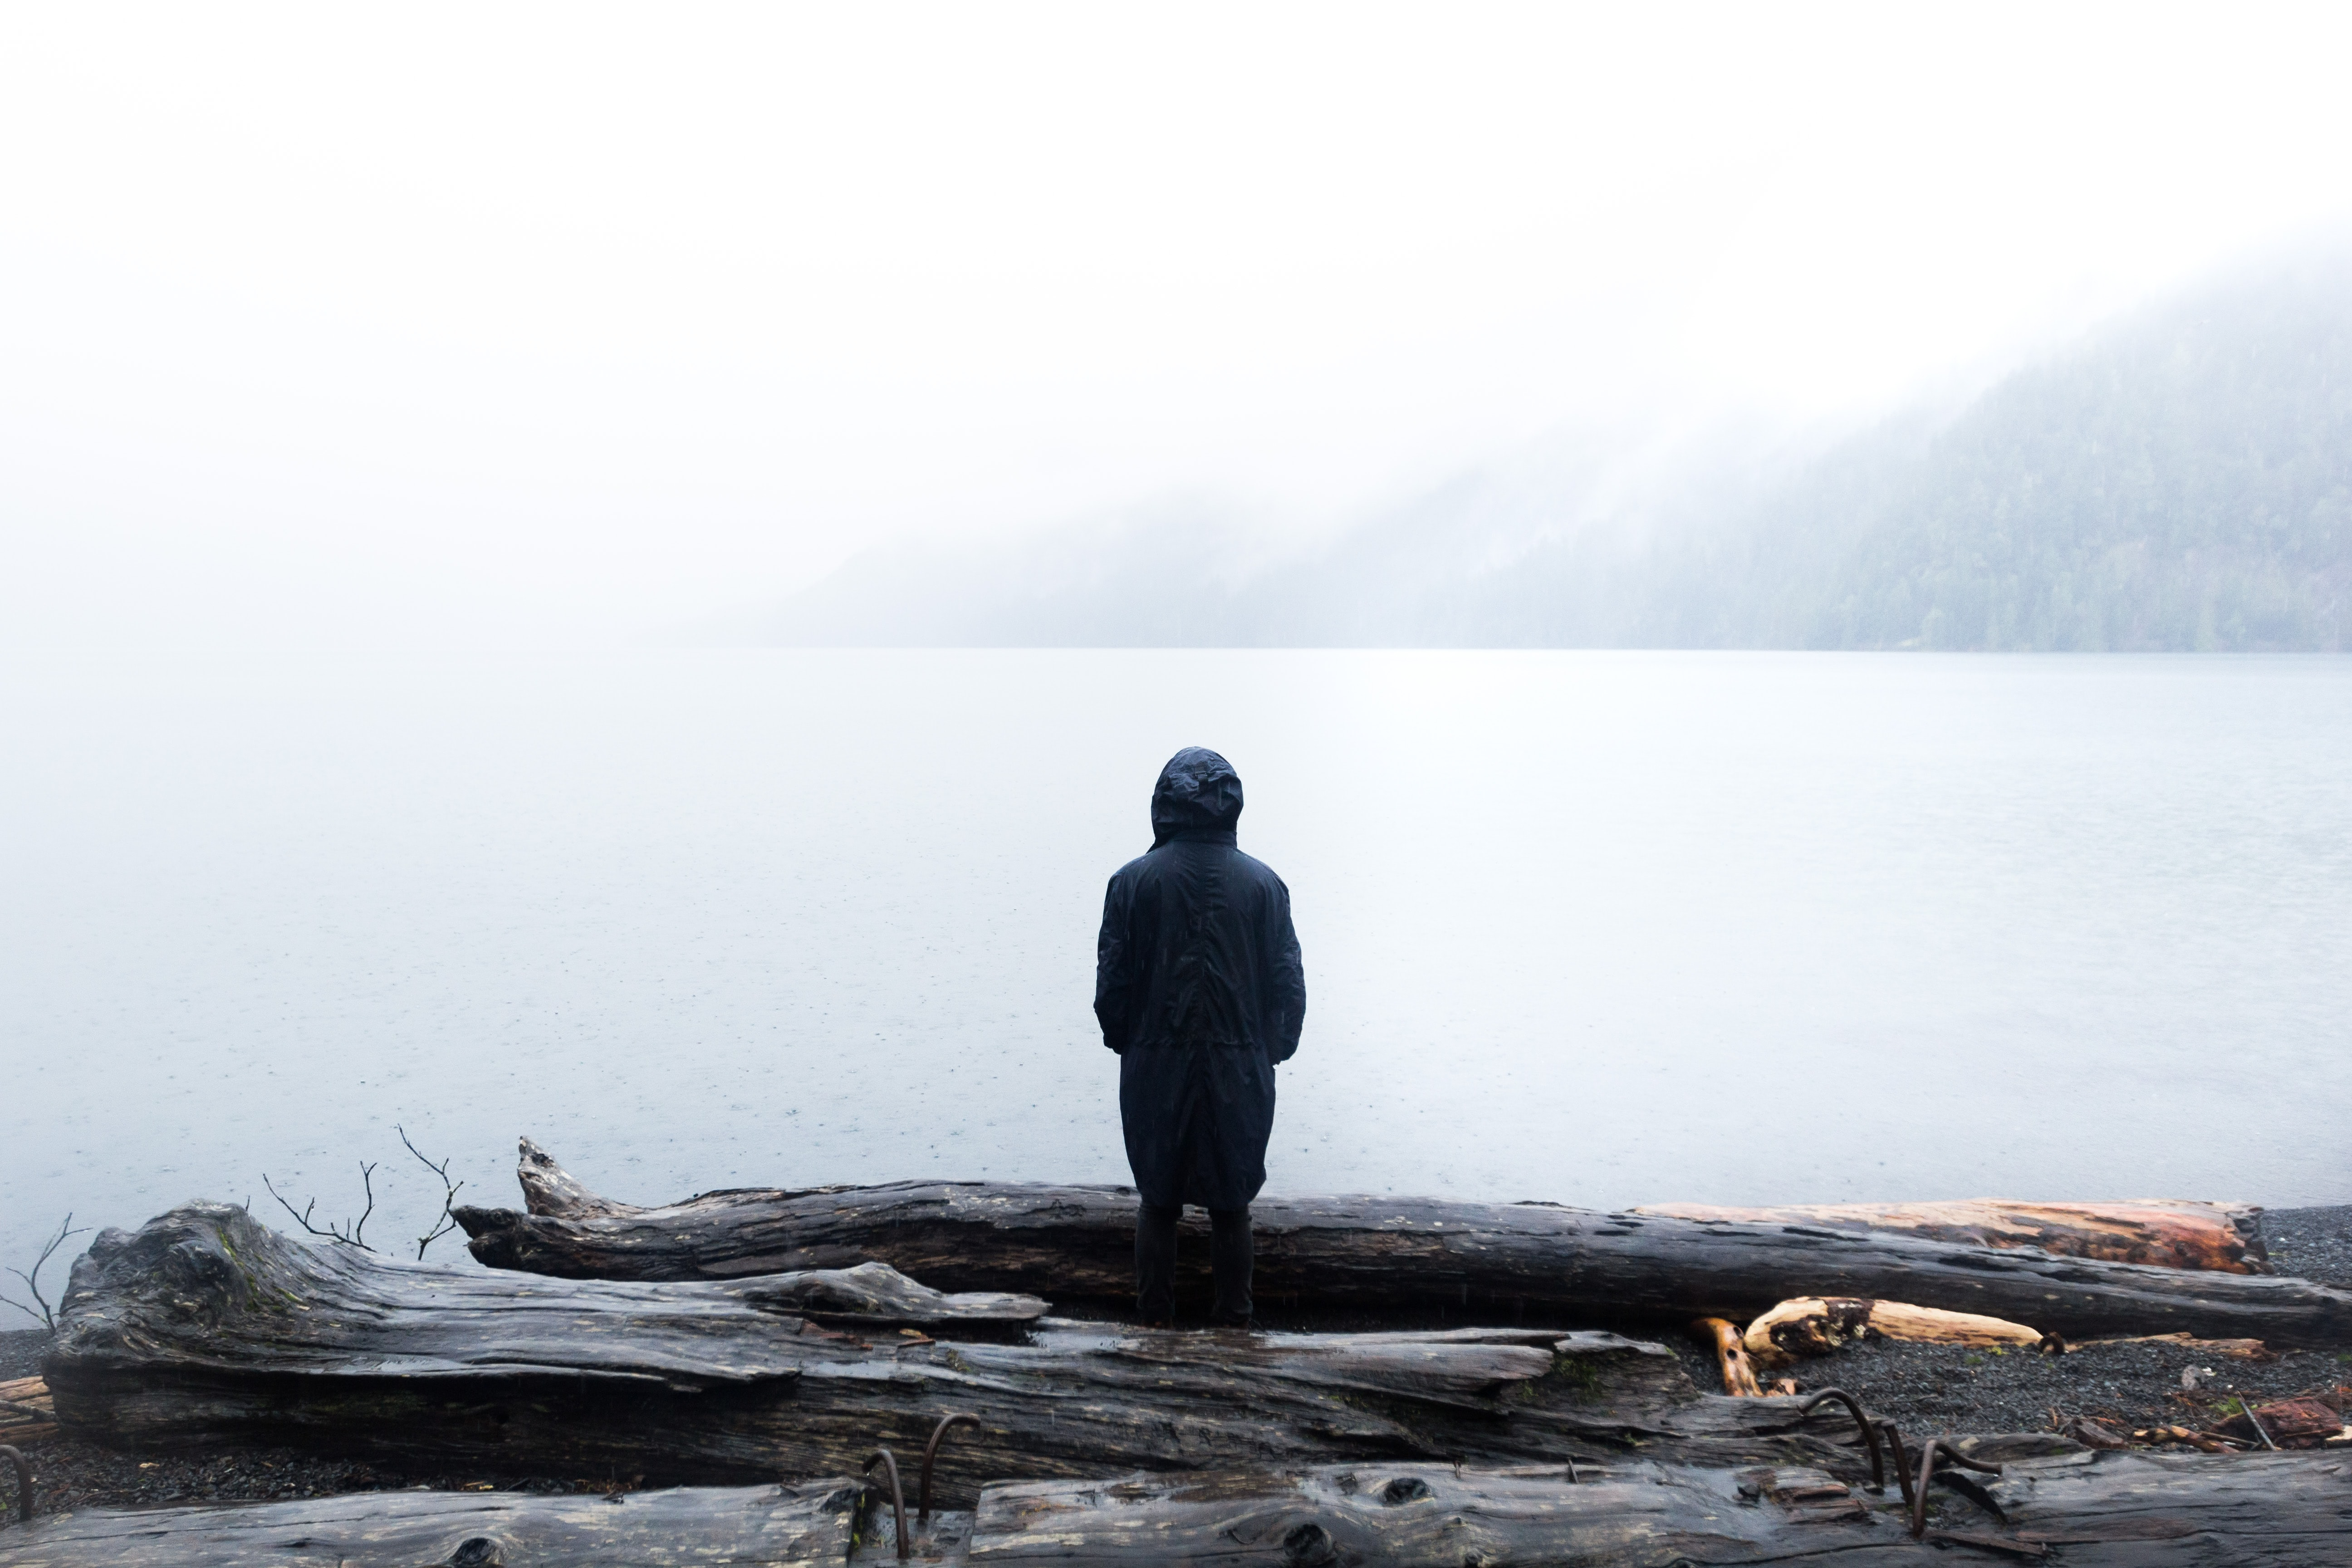 A person staring out into the fog and mountains in Washington